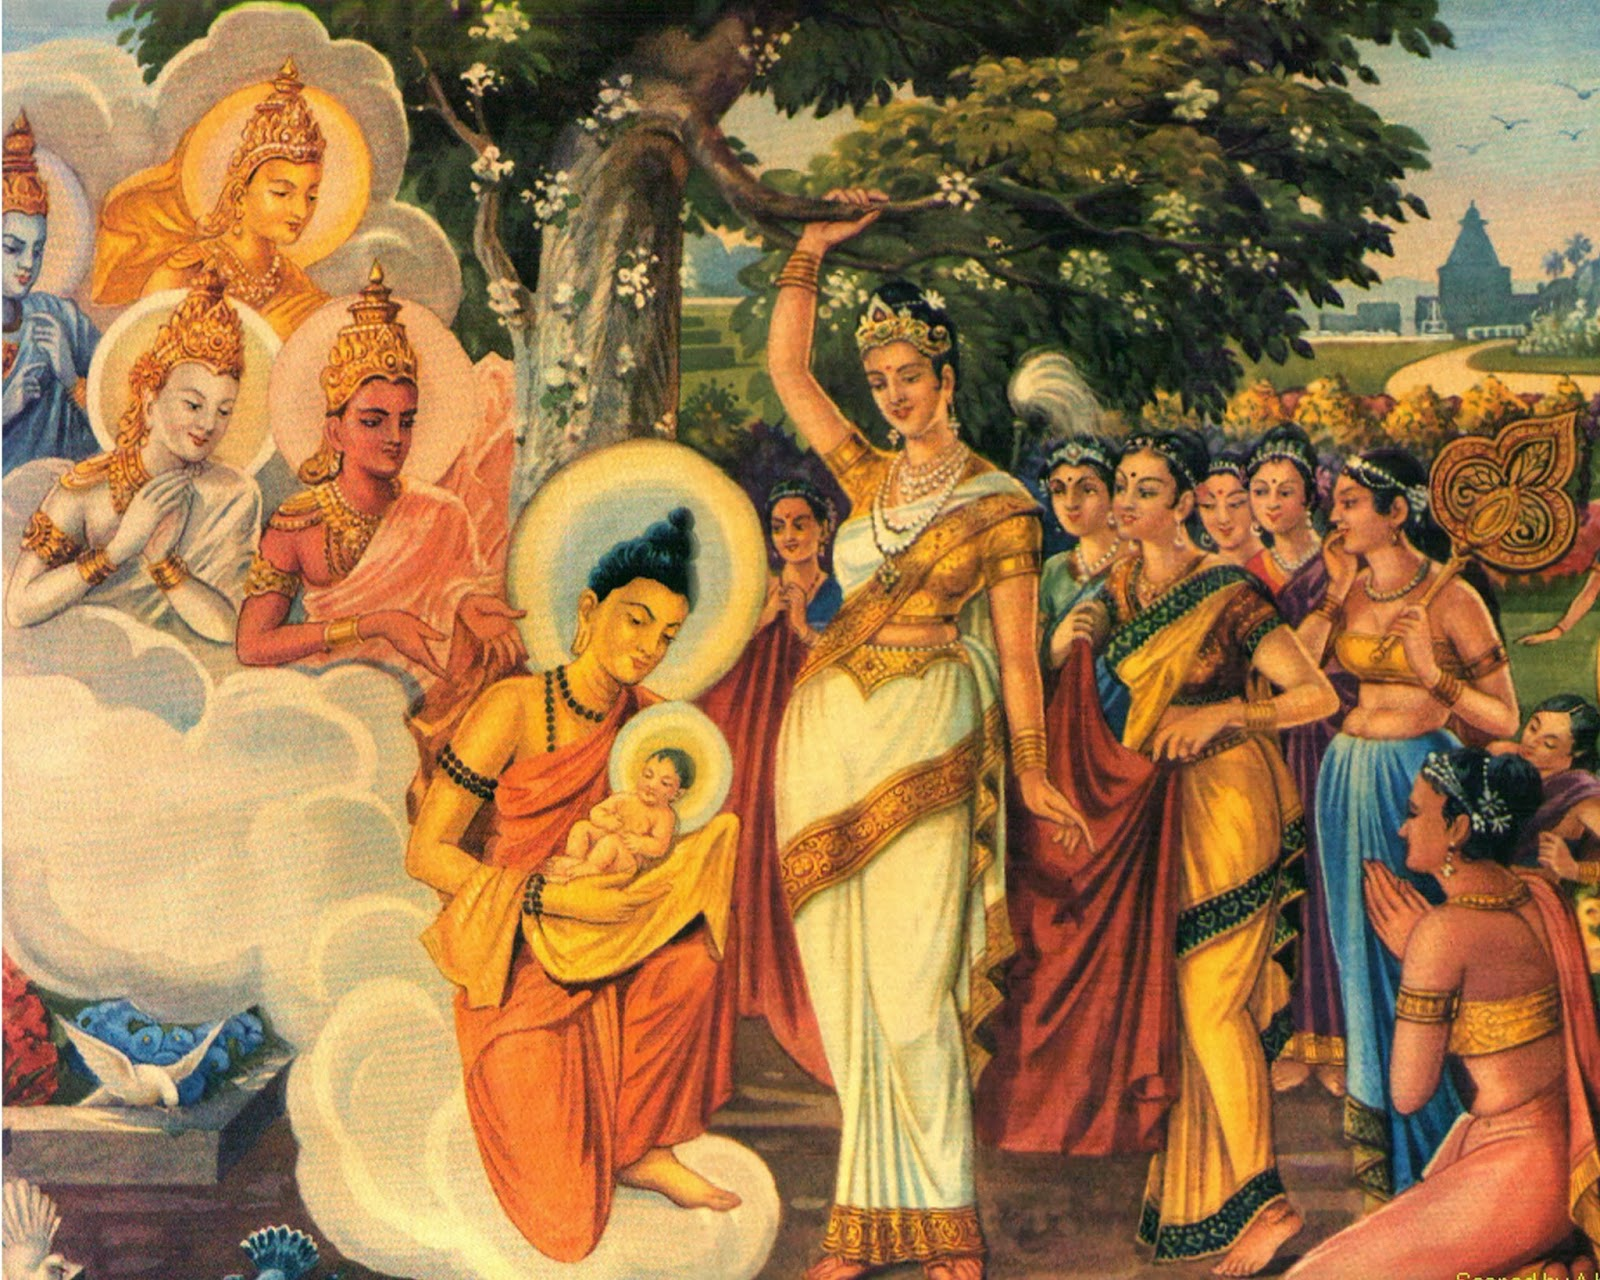 a description buddha indian philosopher and the founder of buddhism born in lumbini nepal 'lord buddha was not born in orissa' history says the buddha was born at lumbini in nepal buddhism was founded in india, when lord buddha, the founder of buddhism, attained supreme enlightenment under the bodhi tree in bodhgaya in 6th century bc.